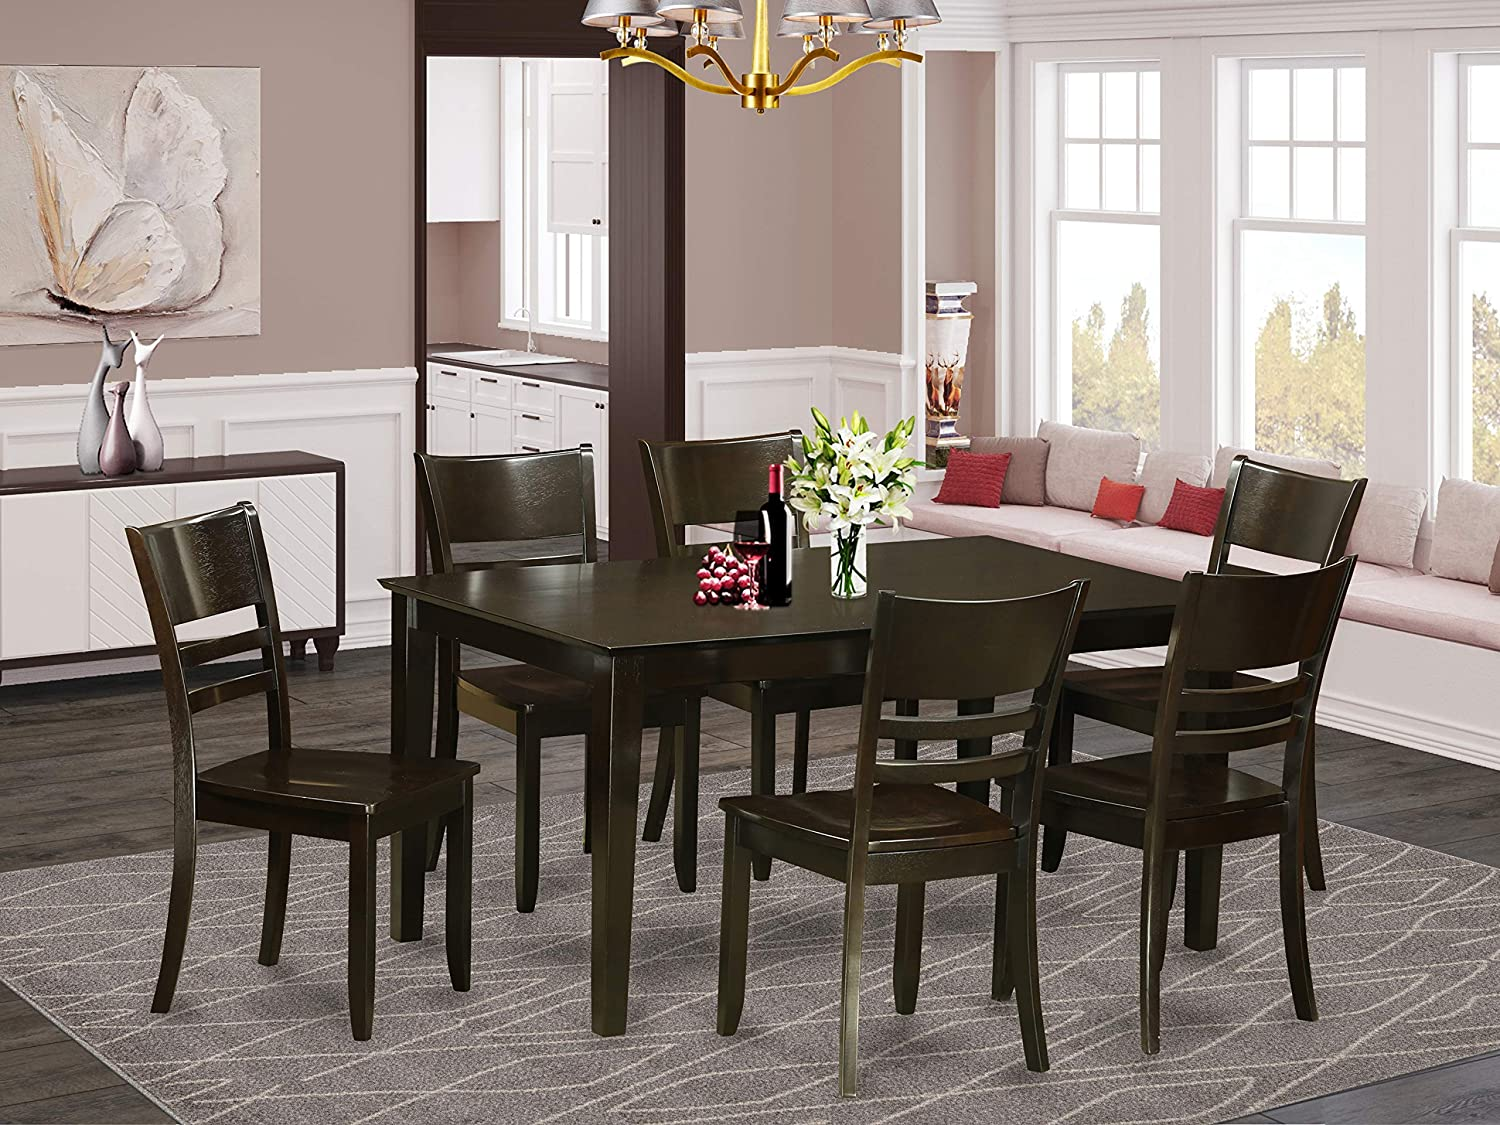 East West Furniture Rectangular Dinette Set 7 Piece - Wooden Wood Dining Chairs Seat - Cappuccino Finish Modern Dining Table and Structure